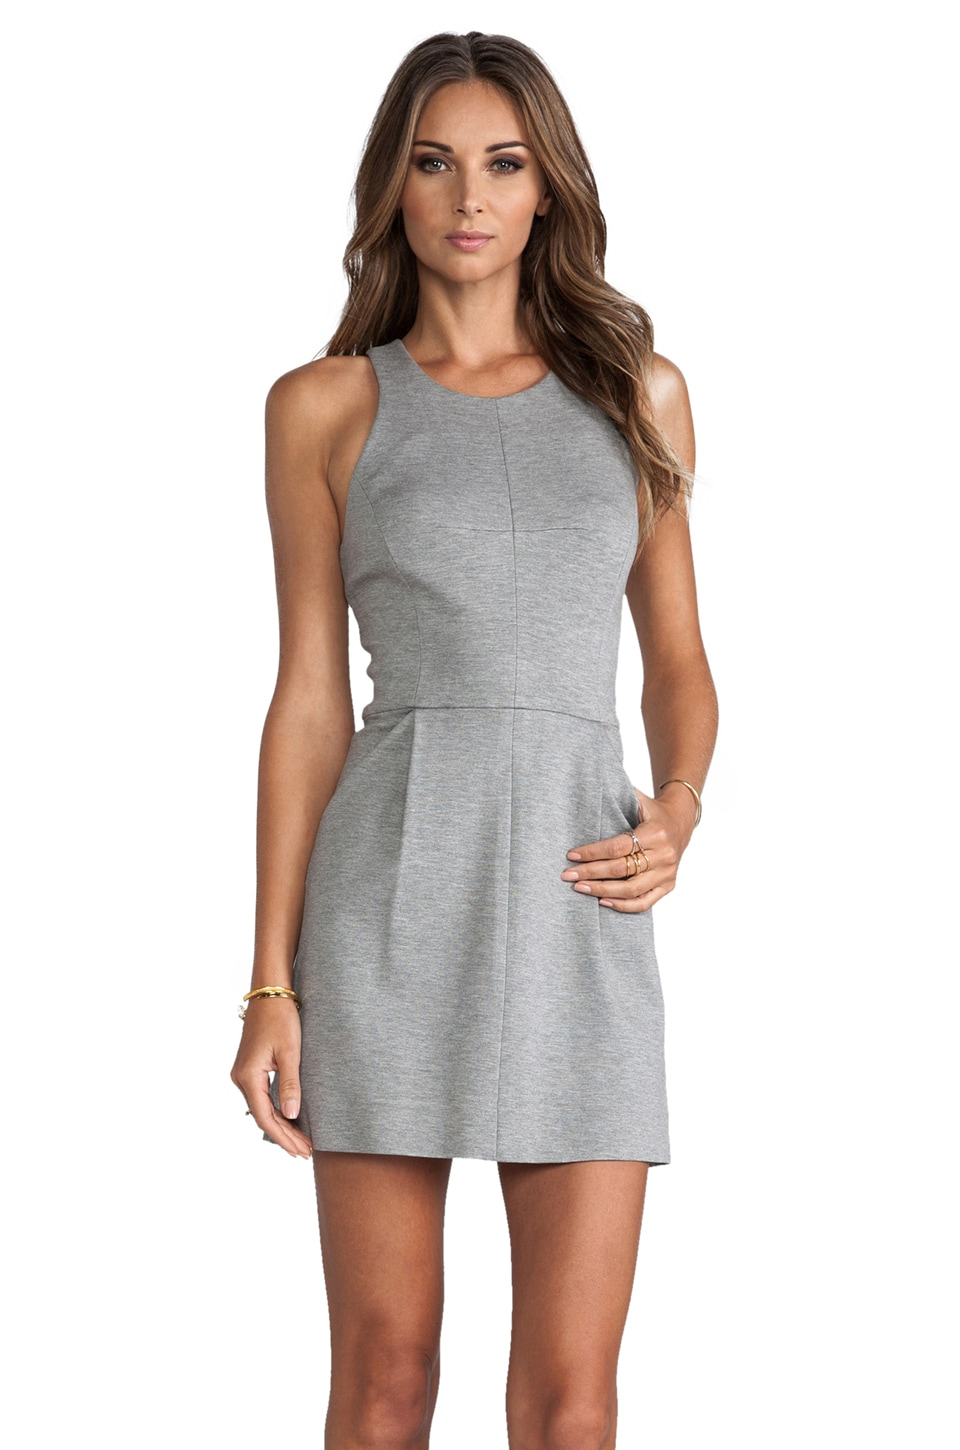 MILLY Pocket Shift Dress in Heather Grey